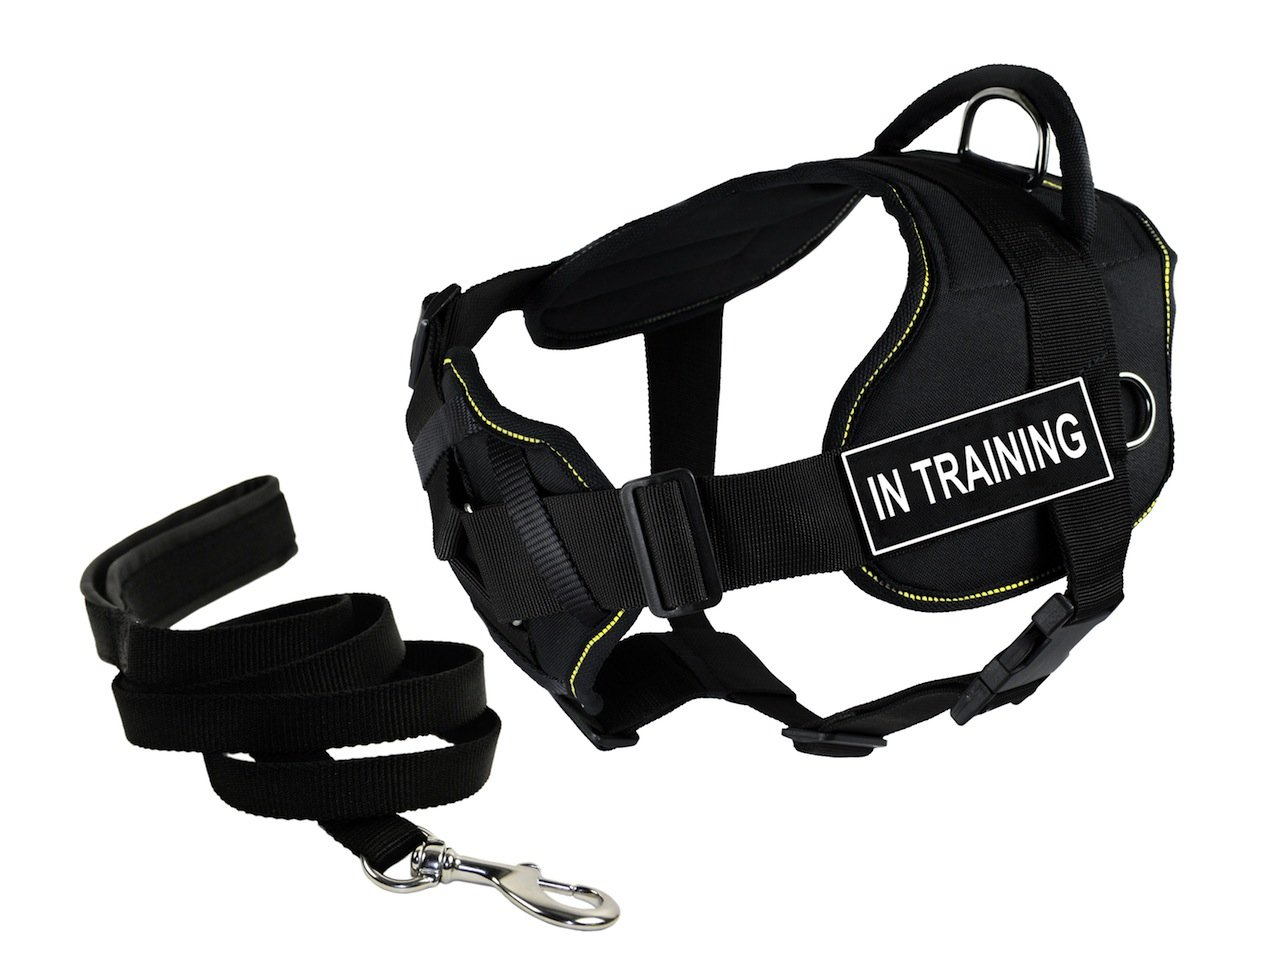 Dean & Tyler DT Fun Petto Supporto in Training Harness, Piccolo, con 1,8 m Padded Puppy guinzaglio.